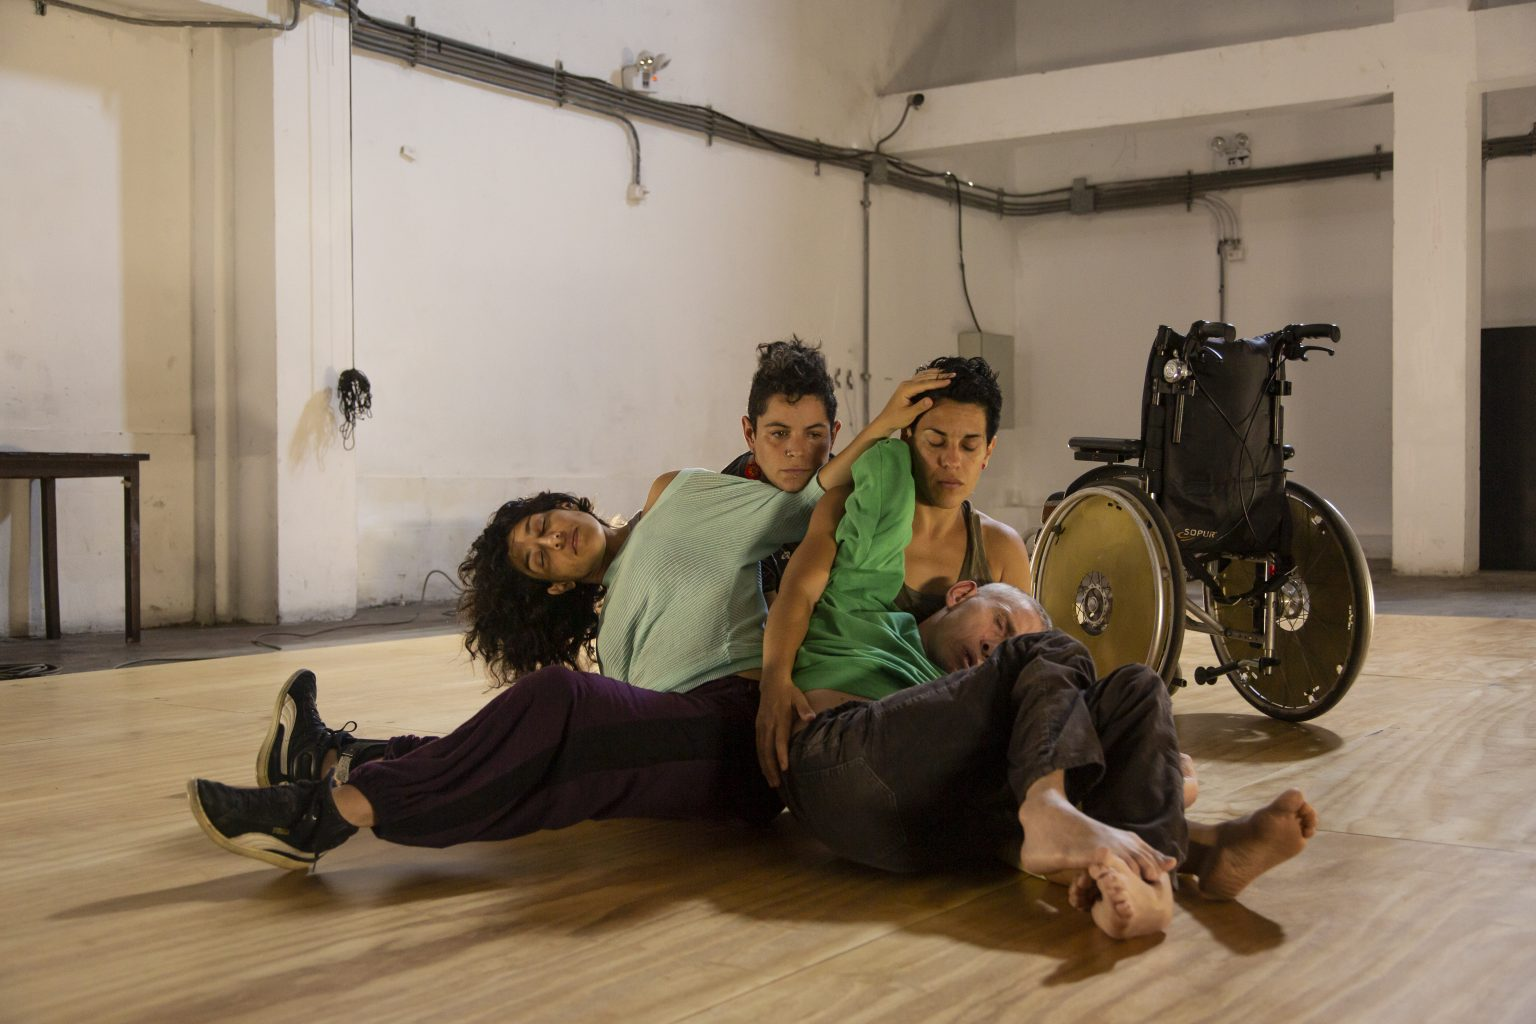 Image of a rehearsal. Four performers are sitting on a wooden floor, almost intertwined. A wheelchair can be seen in the background.